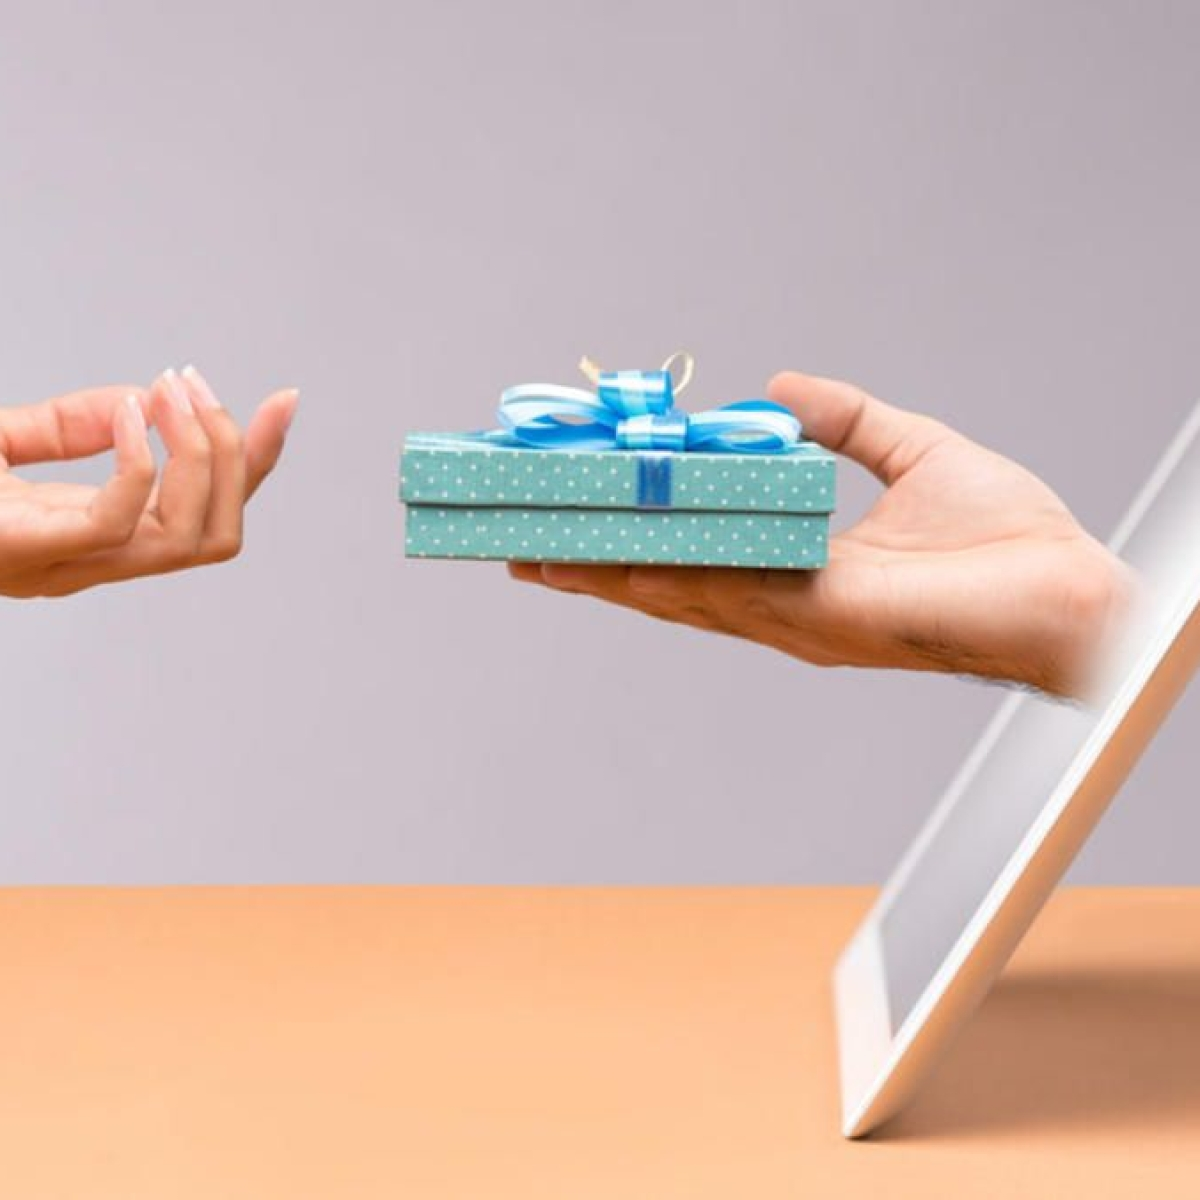 This festive season, delight your loved ones with these digital gifts